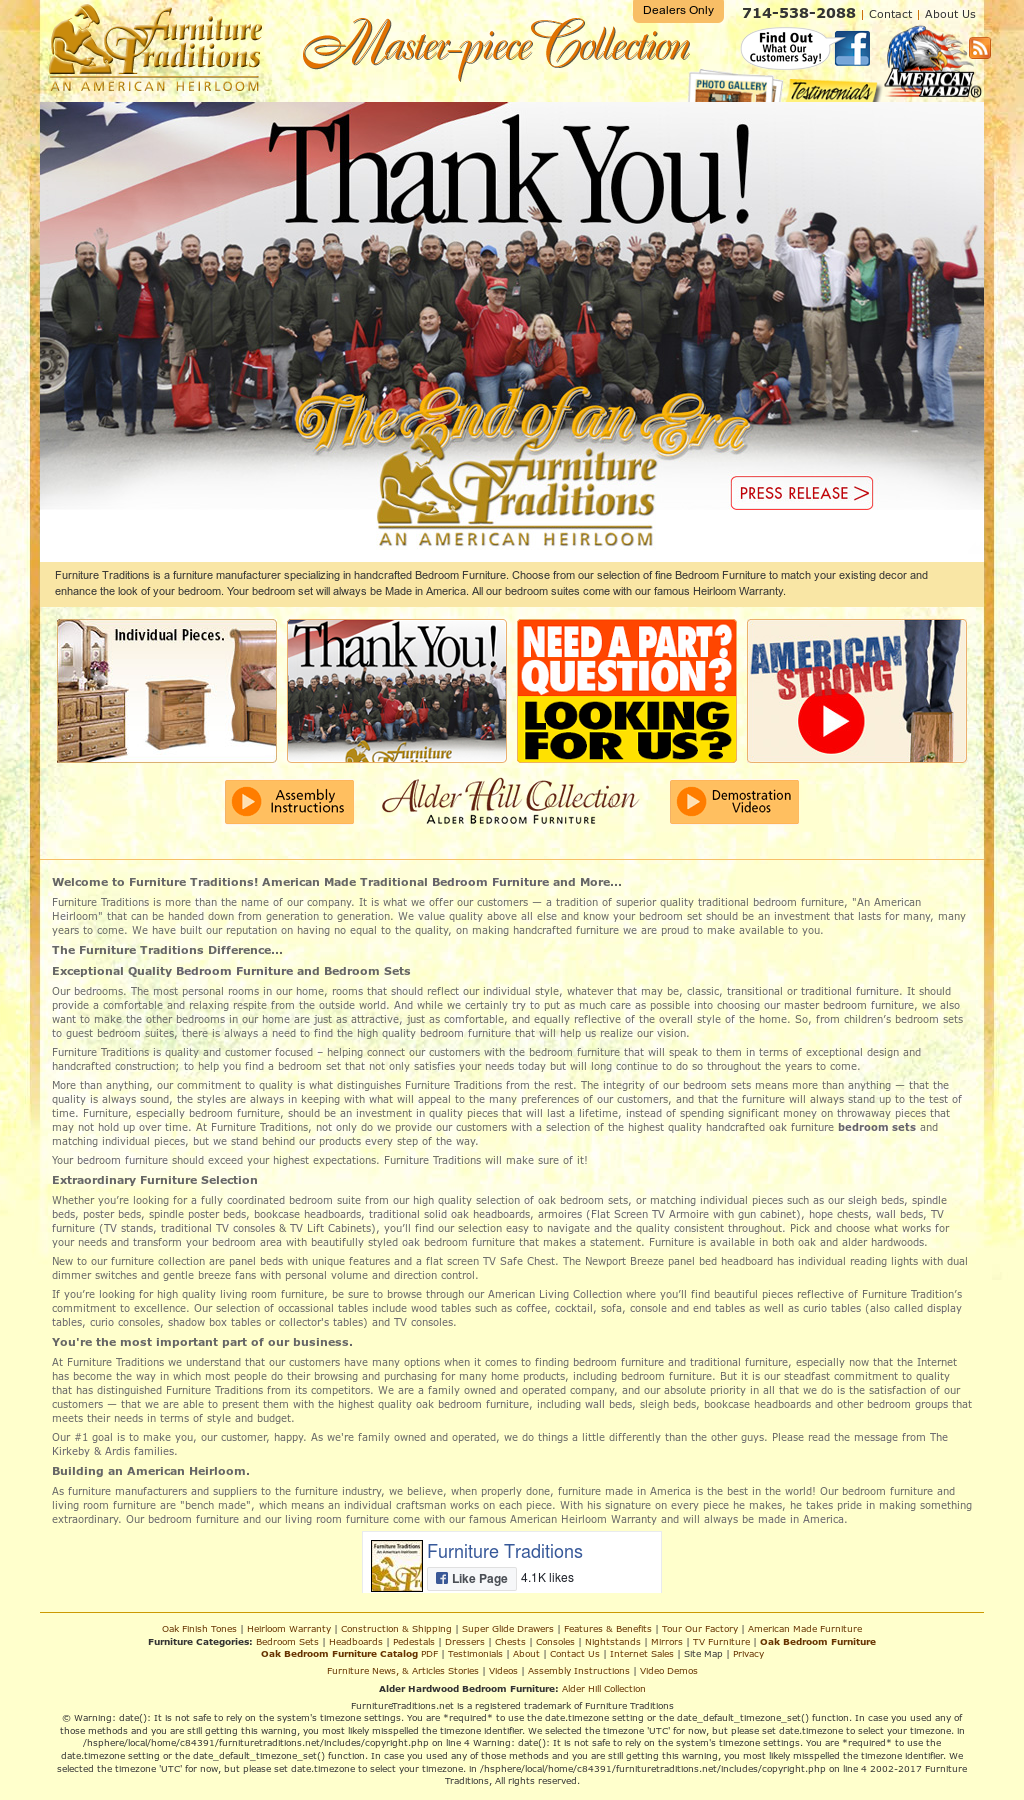 Furniture Traditions Website History